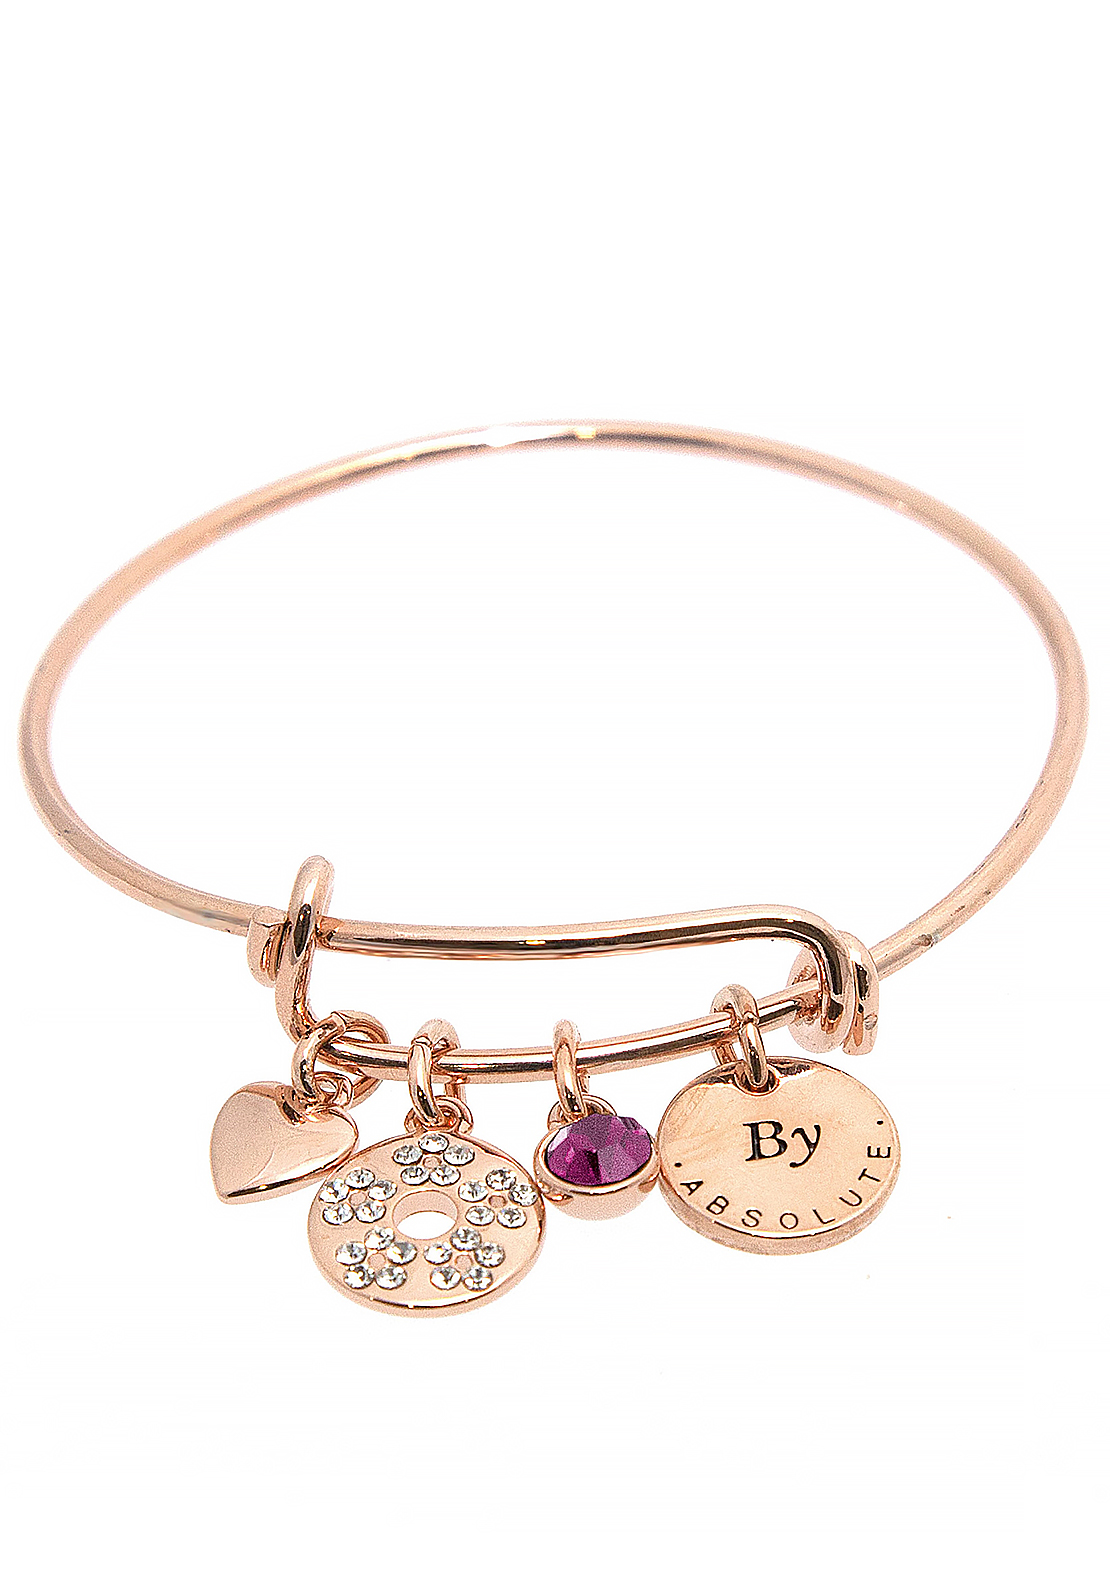 Absolute Jewellery Girls February Charm Bangle, Rose Gold